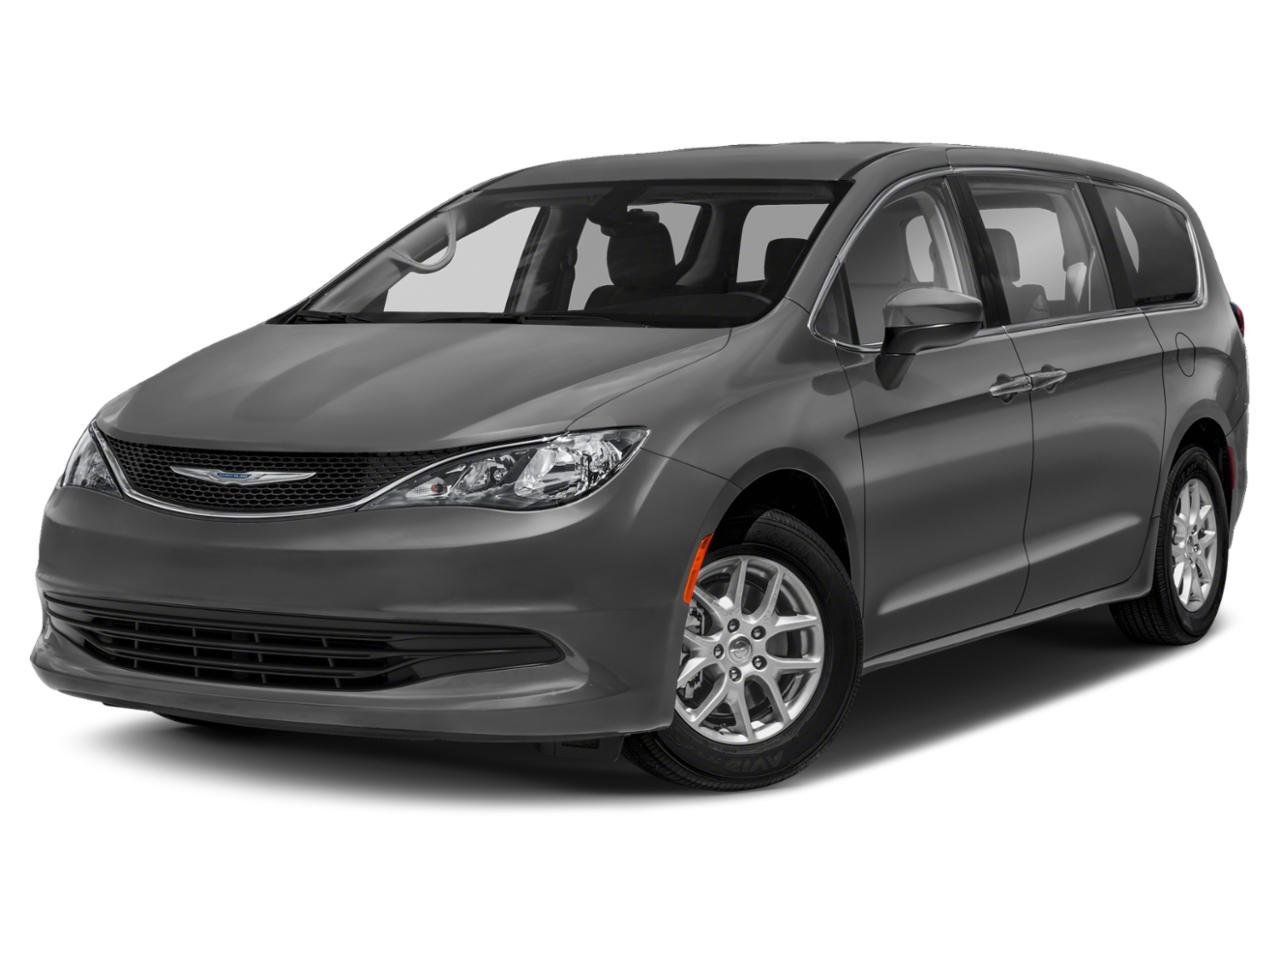 2020 Chrysler Pacifica Vehicle Photo in Lawrence, KS 66046